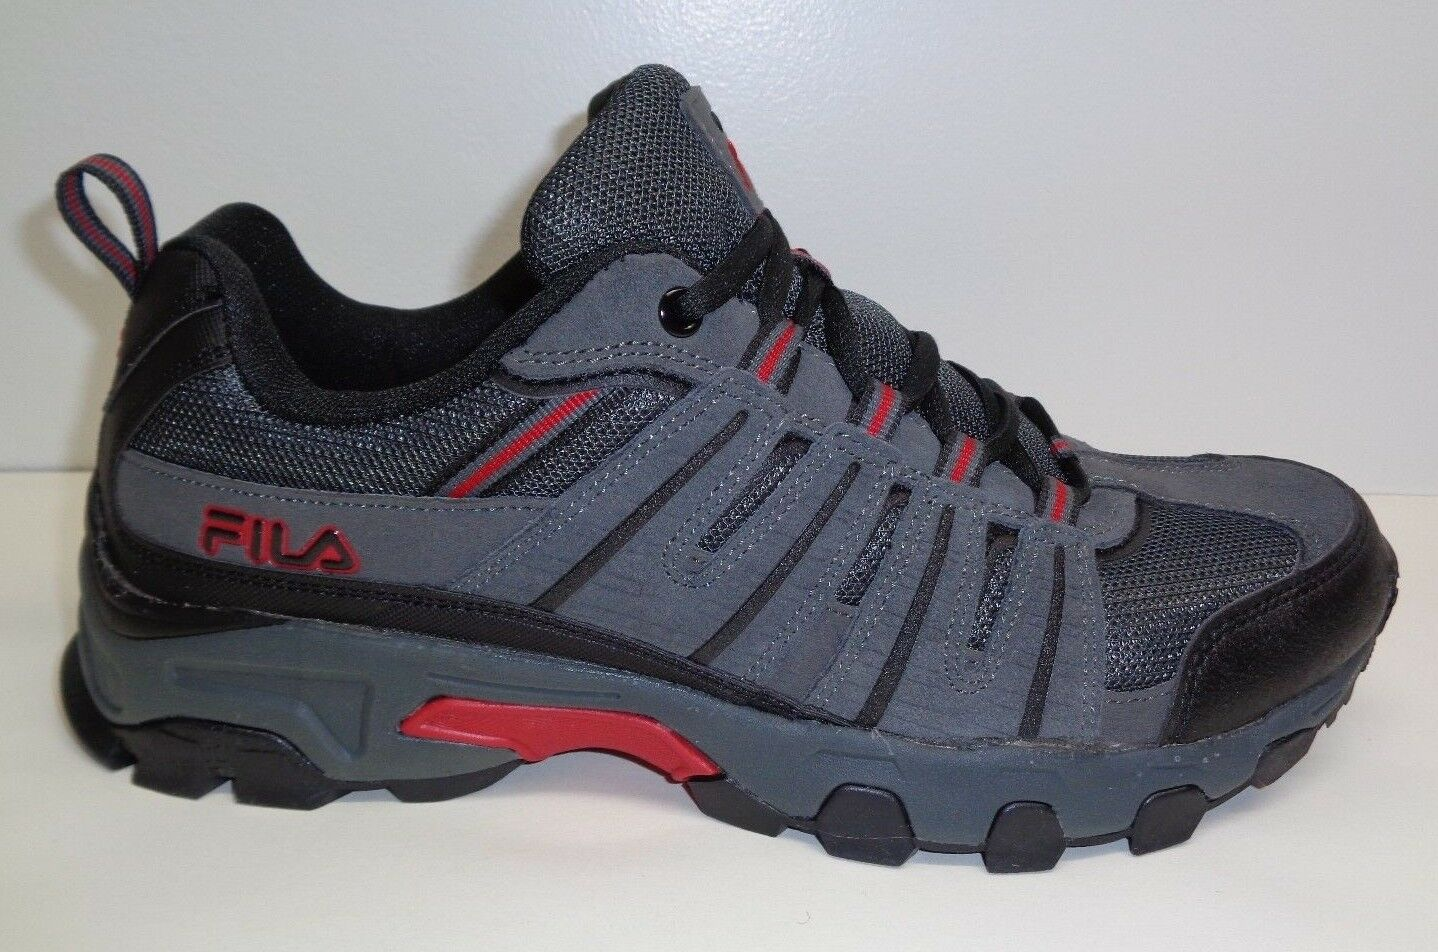 Fila Size 13 WESTMOUNT Grey Black Red Leather Hiking Sneakers New Mens shoes